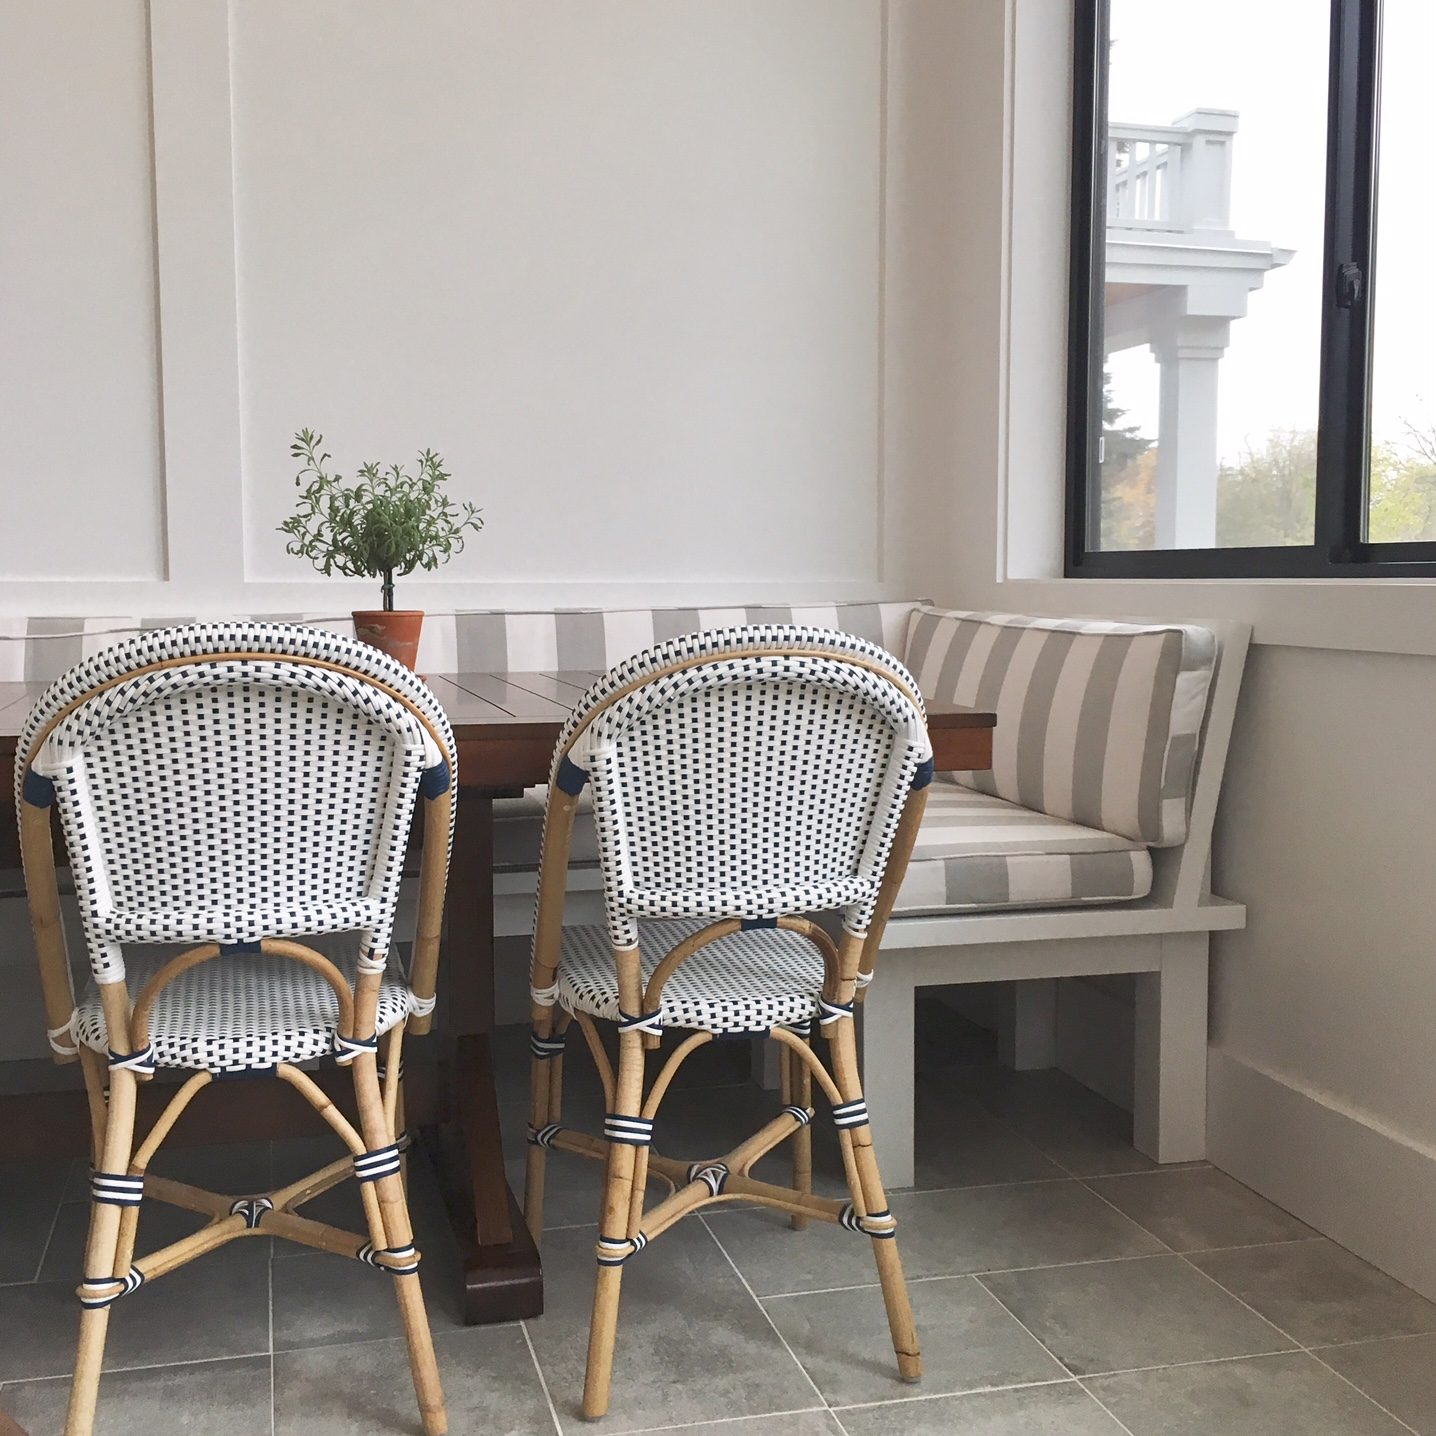 rivera chairs shown here wipe clean easily and are easy to move around when you need to add seating anywhere they come in many colors and styles now